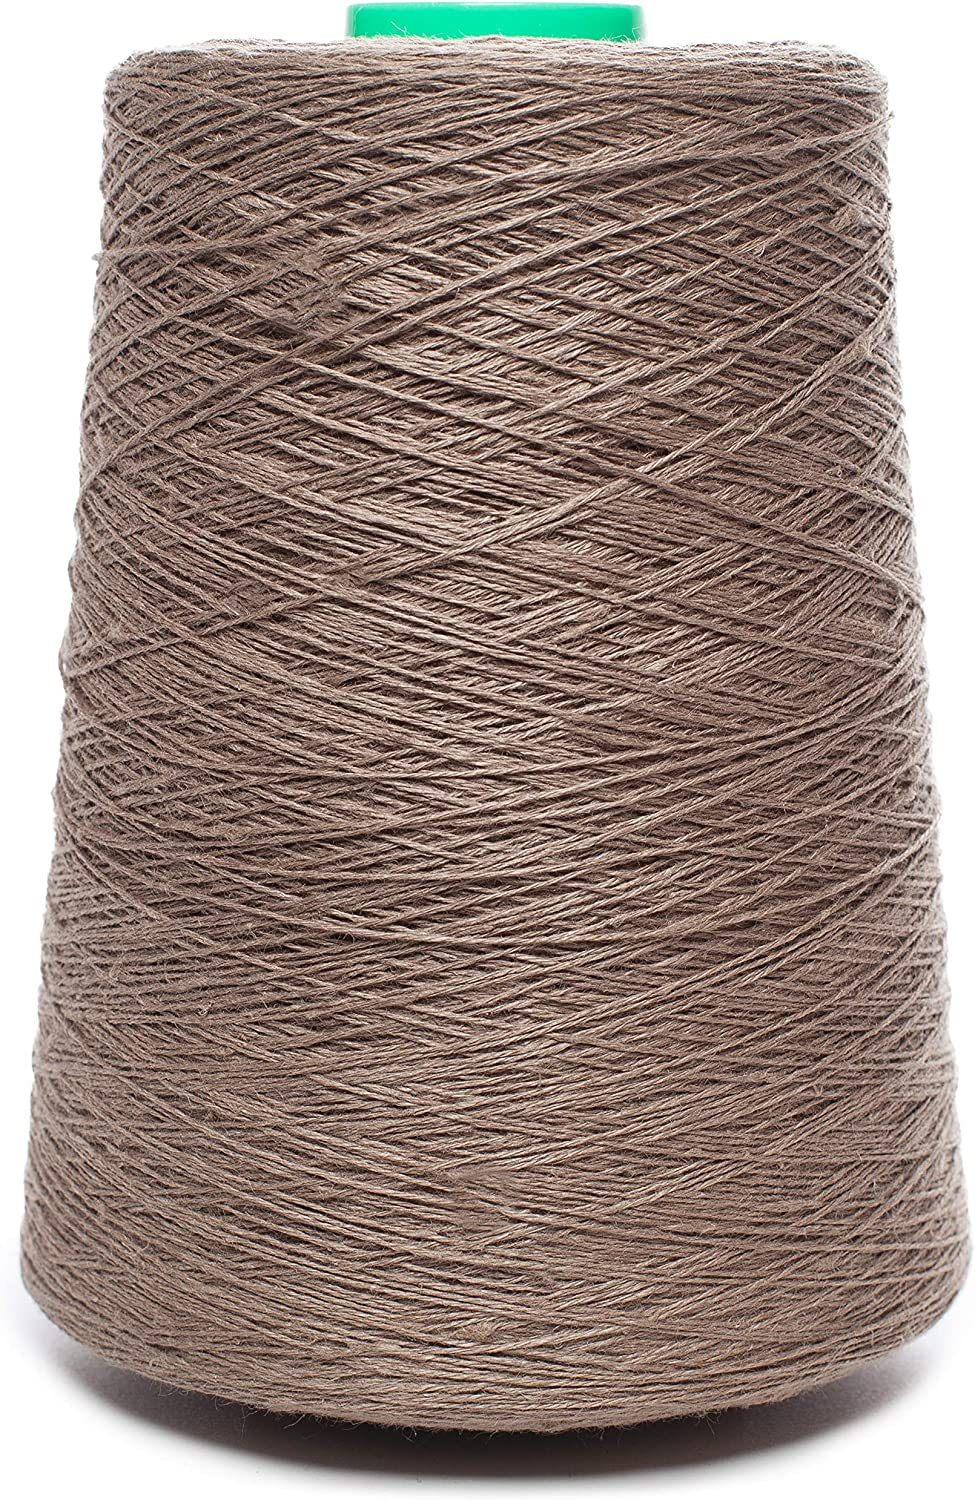 Linen Yarn Cone  100% Flax Linen  1 LBS  Beige Flax color  3 PLY  Sewing Weaving Crochet Embroidering  3.000 Yards